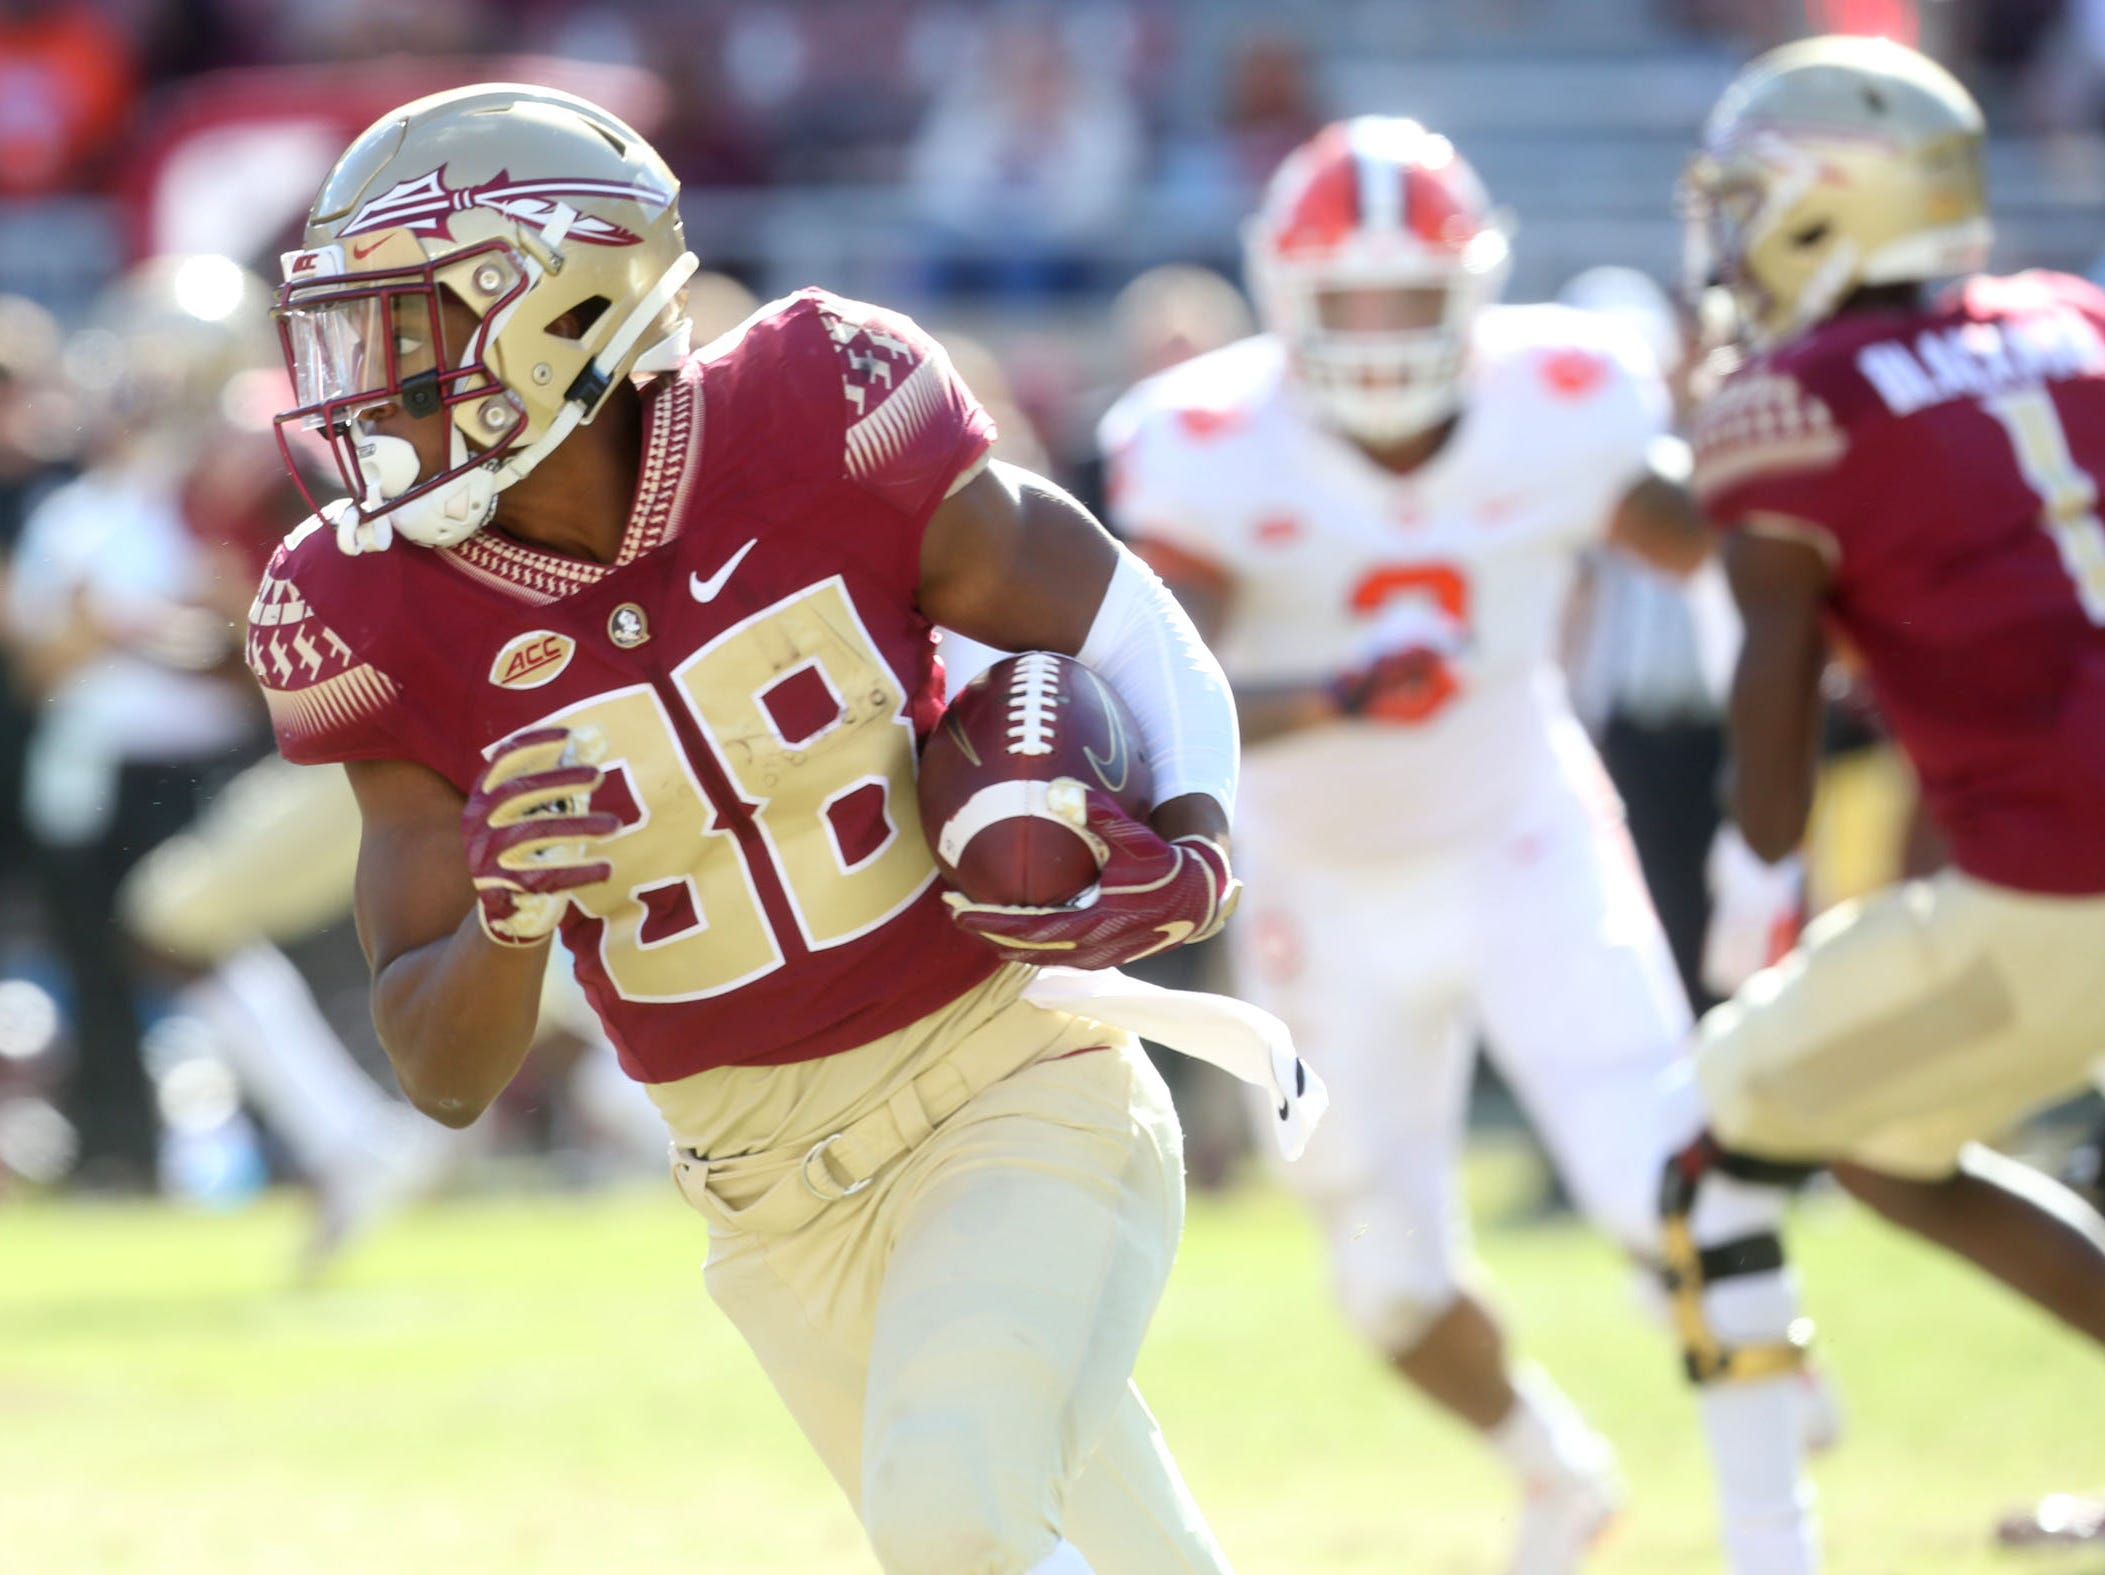 Florida State Seminoles wide receiver Tre'Shaun Harrison (88) makes a run to gain some yards as the Florida State Seminoles take on the Clemson Tigers in college football at Doak S. Campbell Stadium on Saturday, Oct. 27, 2018.